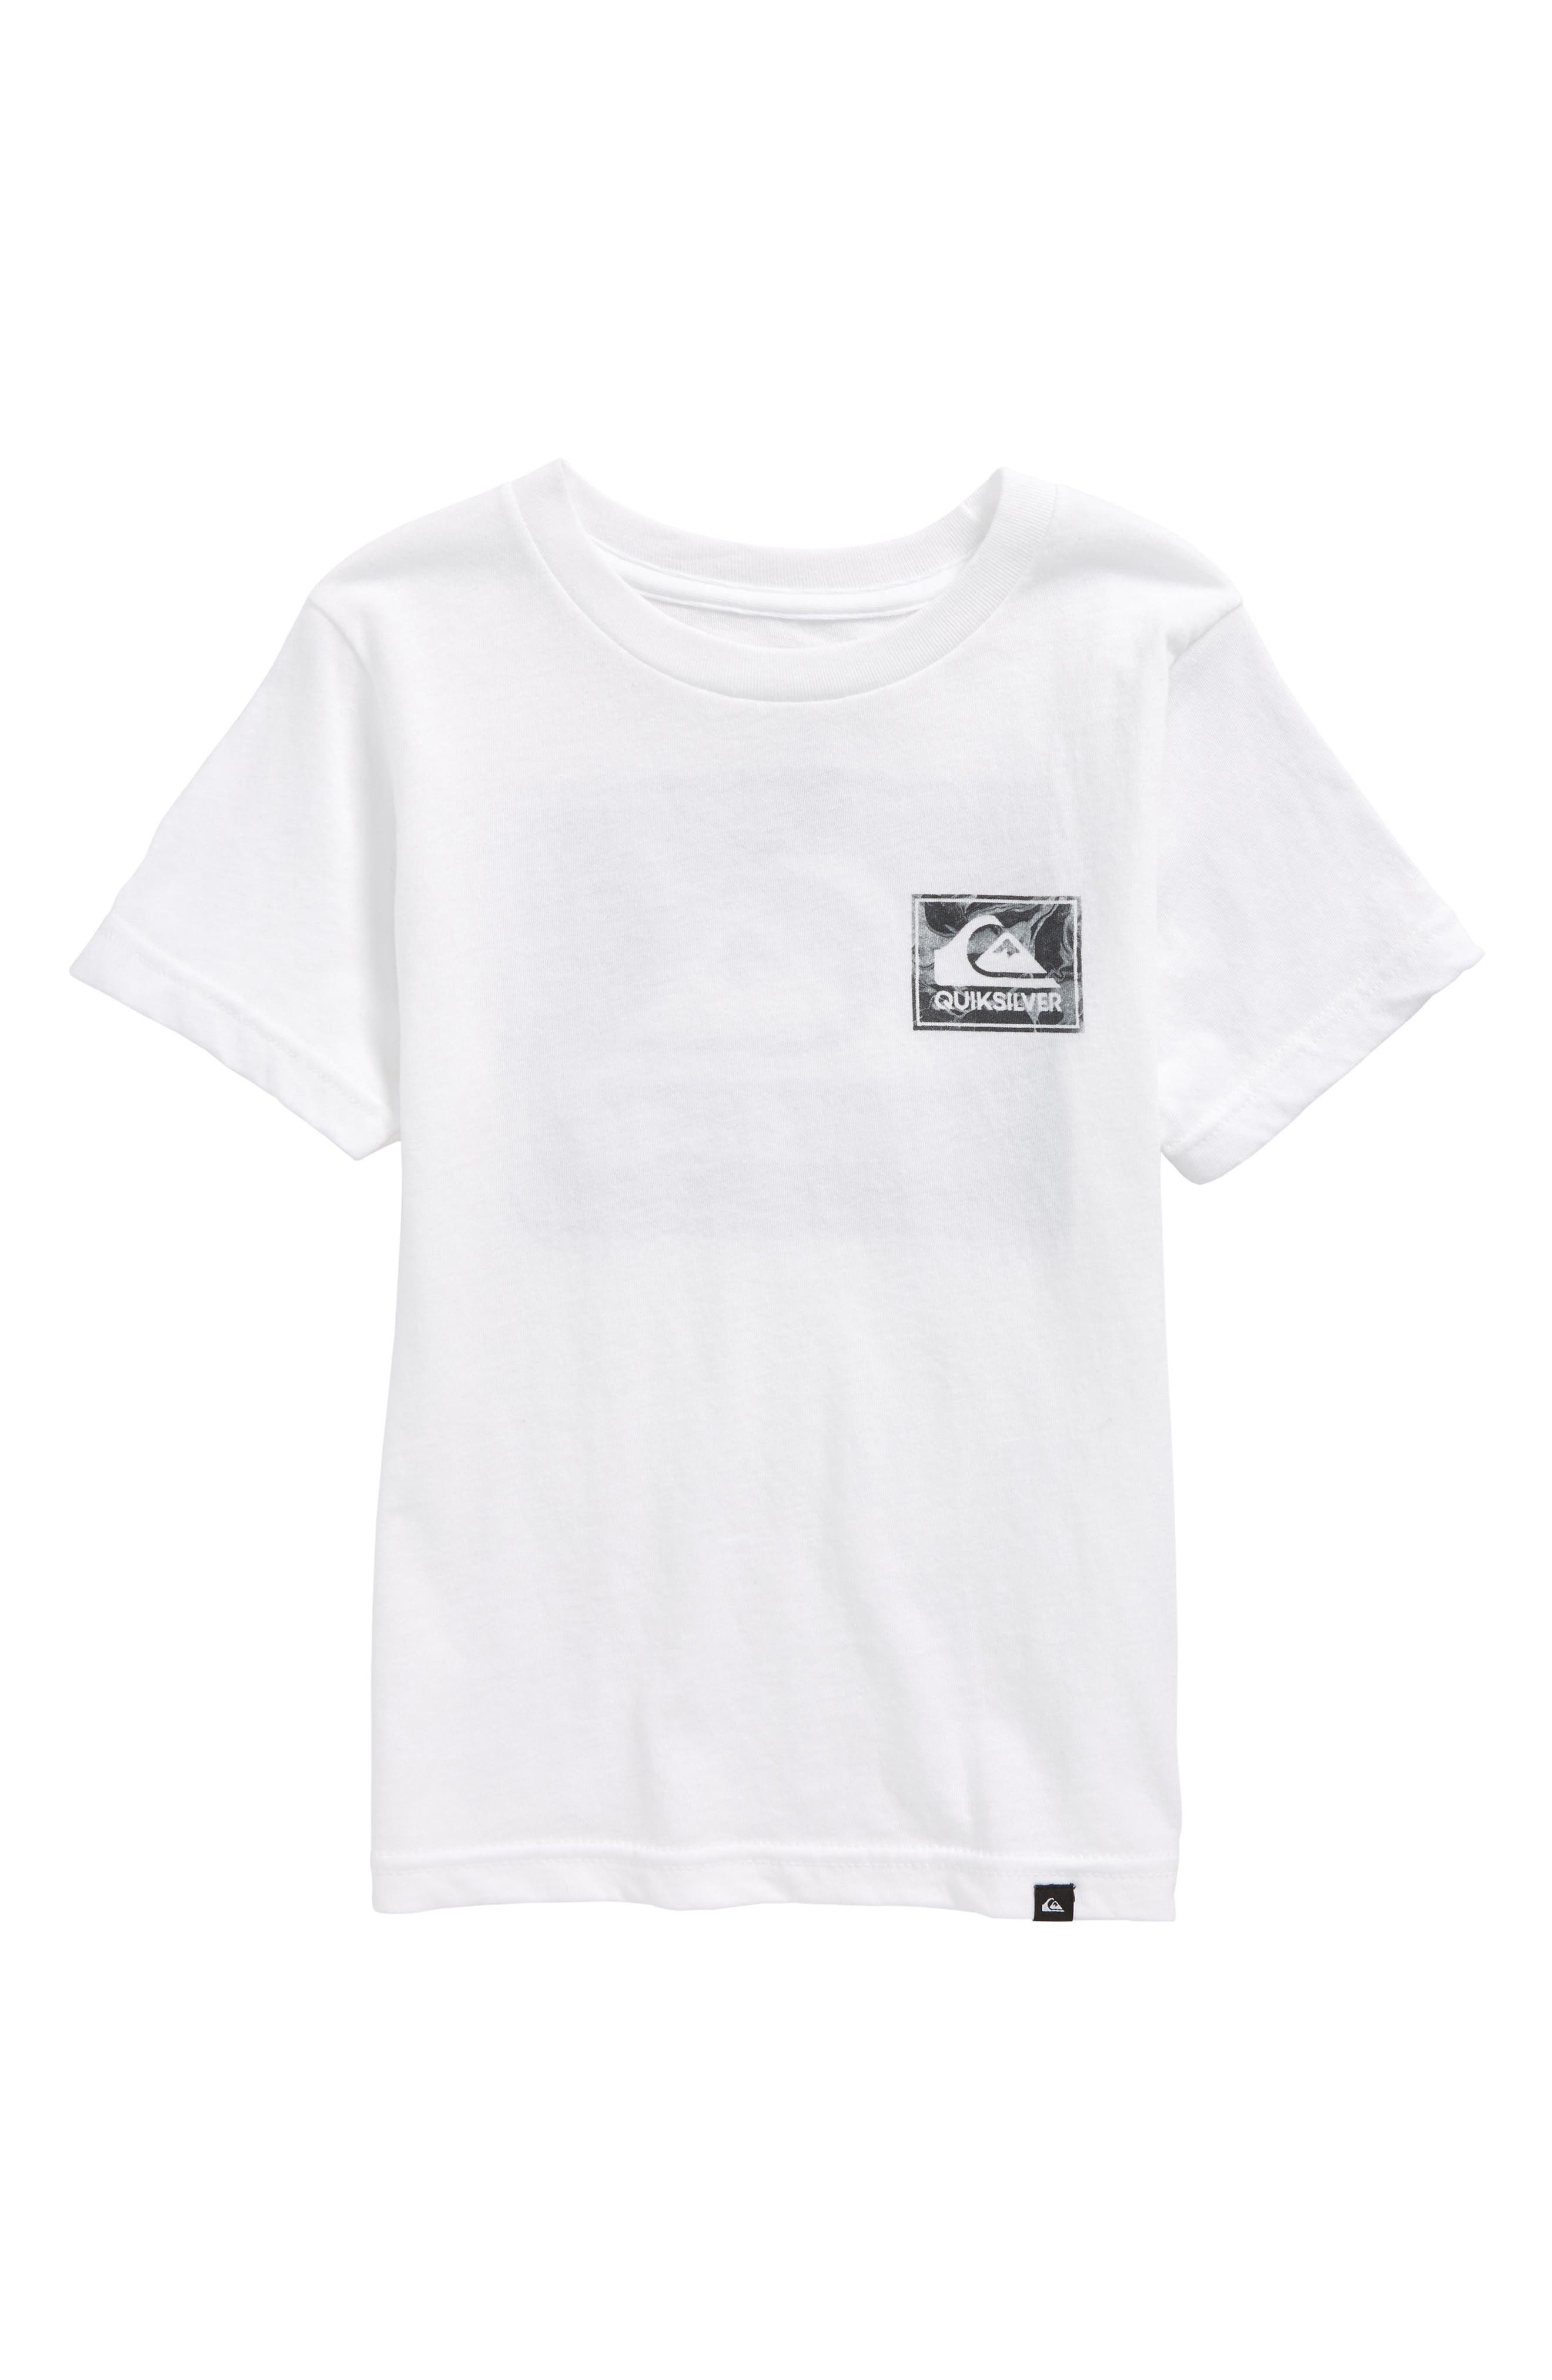 Volcano Blues T-Shirt,                             Main thumbnail 1, color,                             White